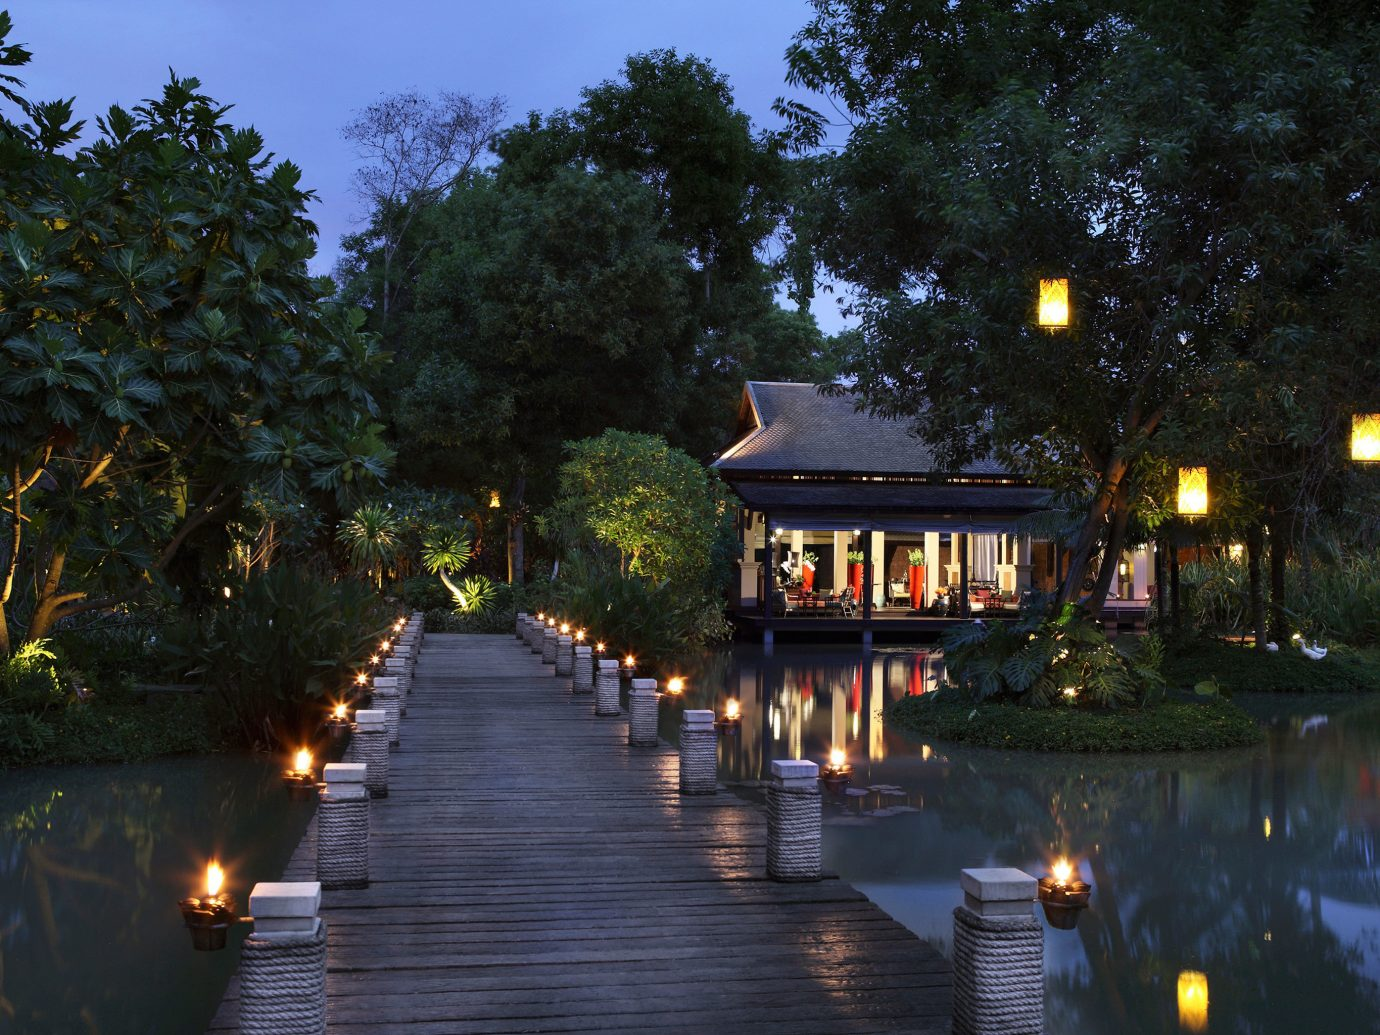 Hotels tree outdoor night reflection evening River morning estate waterway landscape lighting autumn